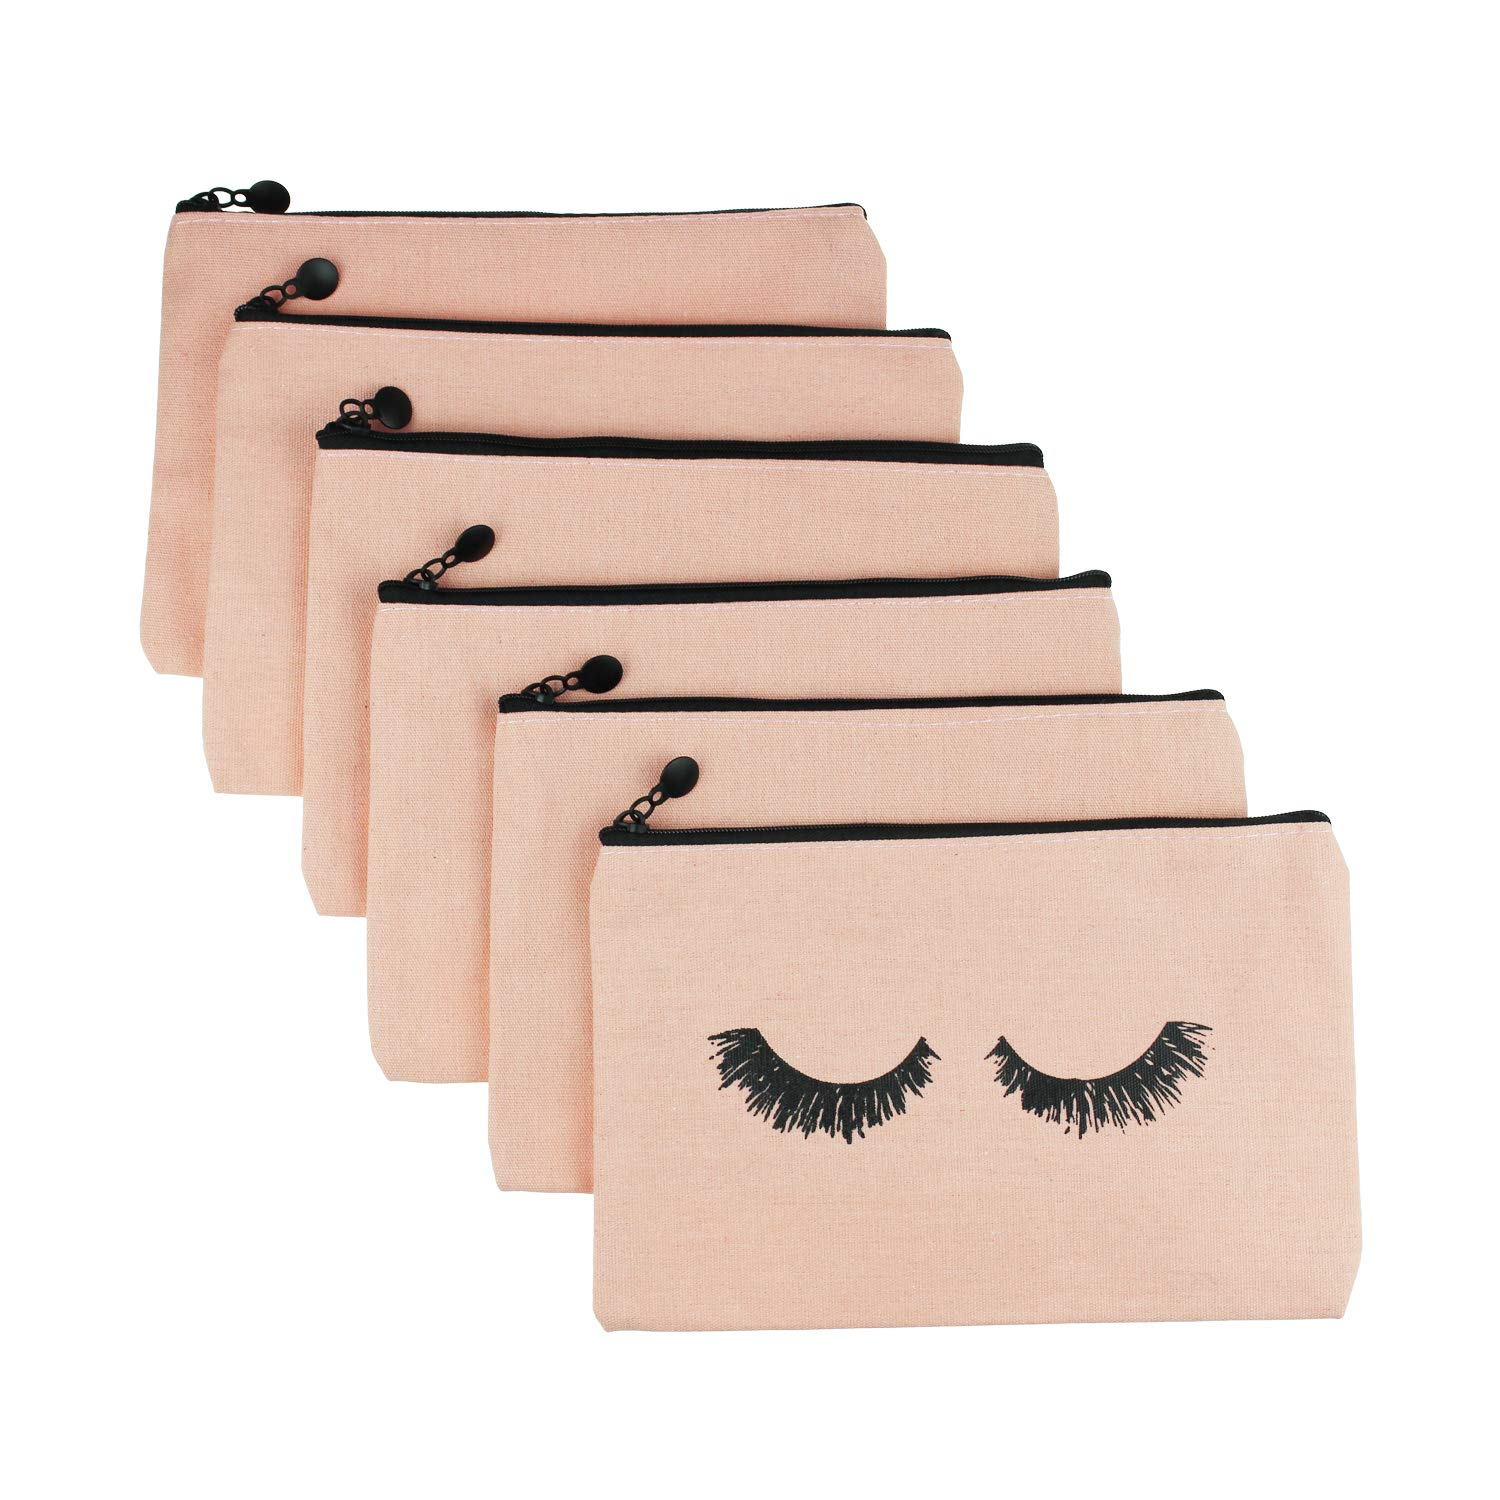 Goodma 6 Pieces Makeup Cosmetic Bags Eyelash Pattern Travel Pouches Toiletry Cases with Zippered Pocket for Women and Girls Pink